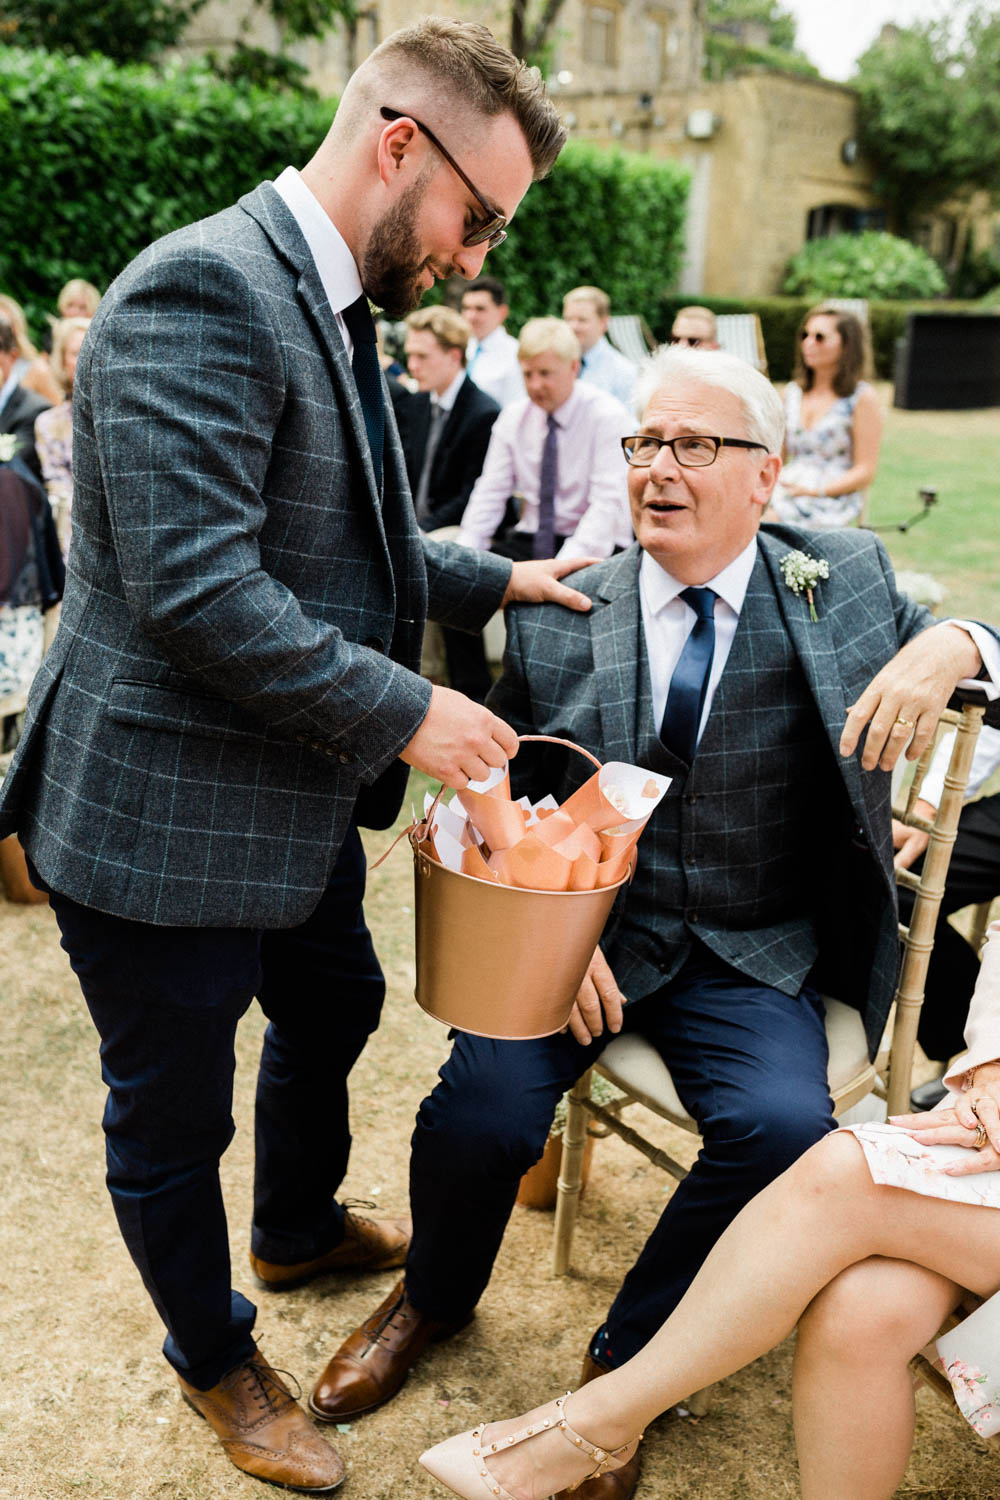 Special-Day-Photography-The-Manor-House-Hotel-Moreton-in-Marsh-Moreton-In-Marsh-Summer-Wedding-The-best-man-gives-confetti-to-guests.jpg